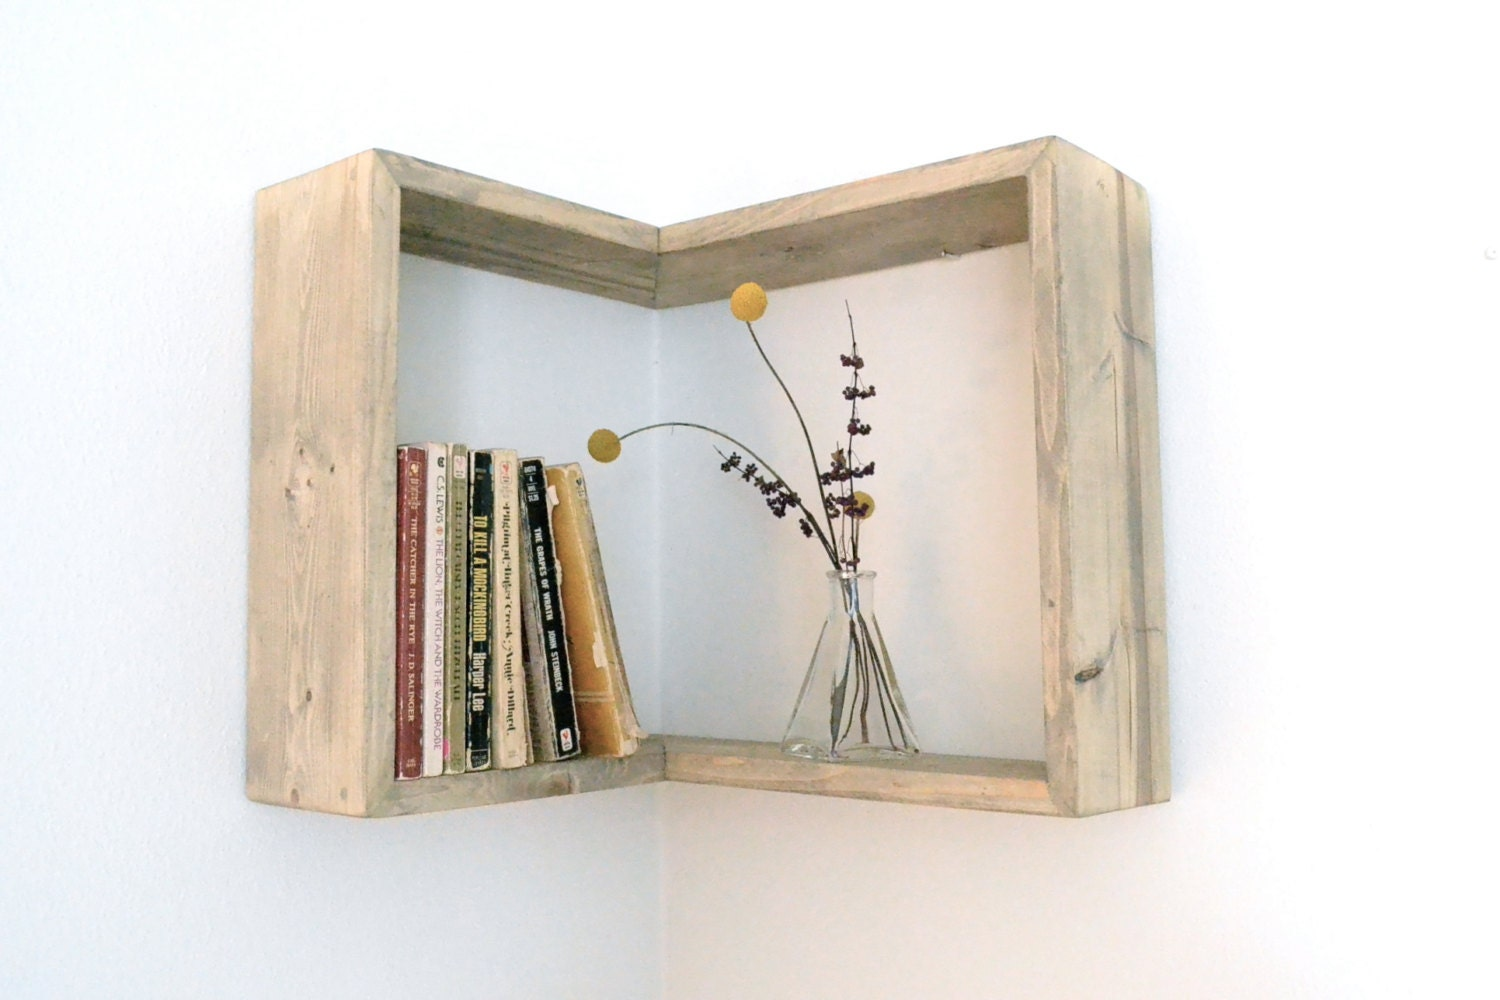 Corner Box Shelf - The807